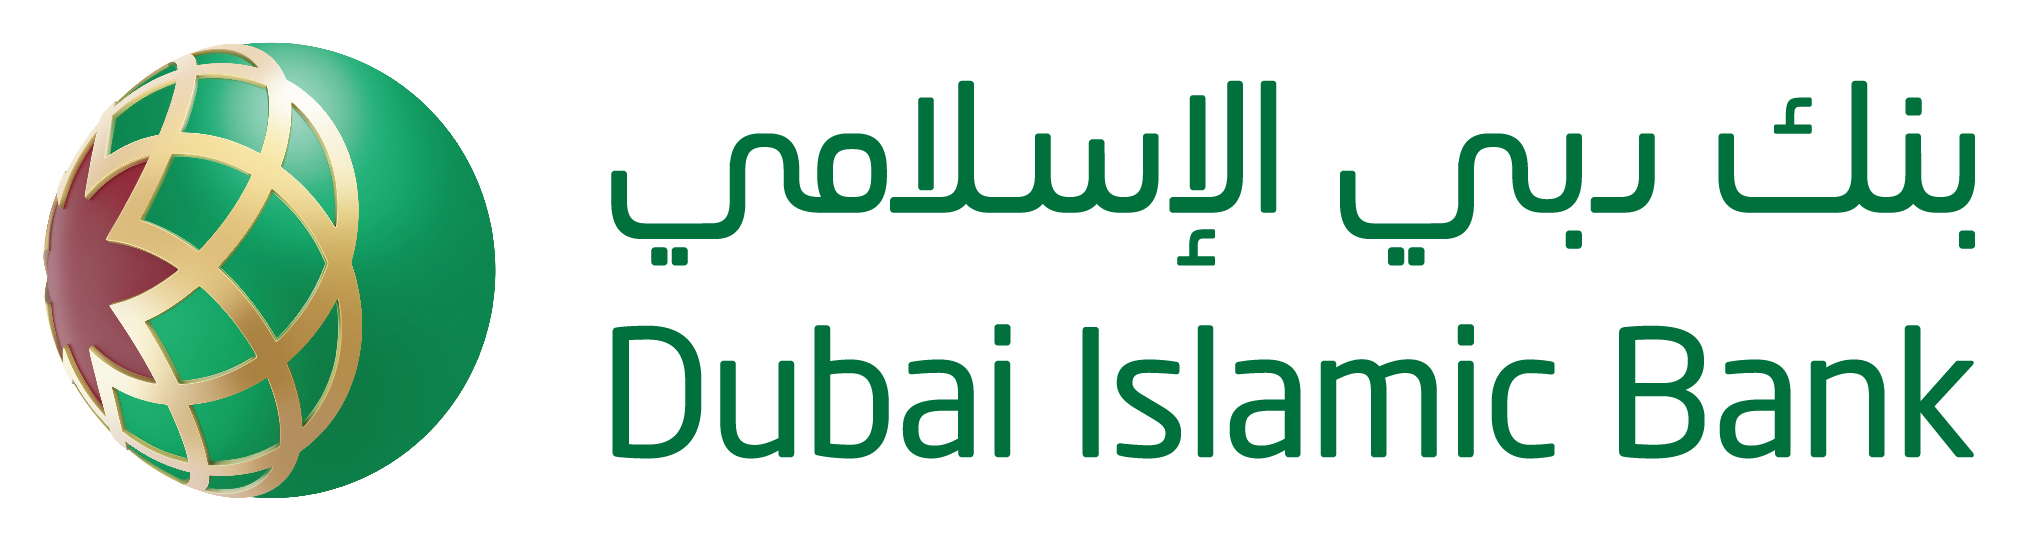 Dubai Islamic Bank - Al Islami Home Finance Mohammed Bin Rashid Housing Establishment (Under Construction)